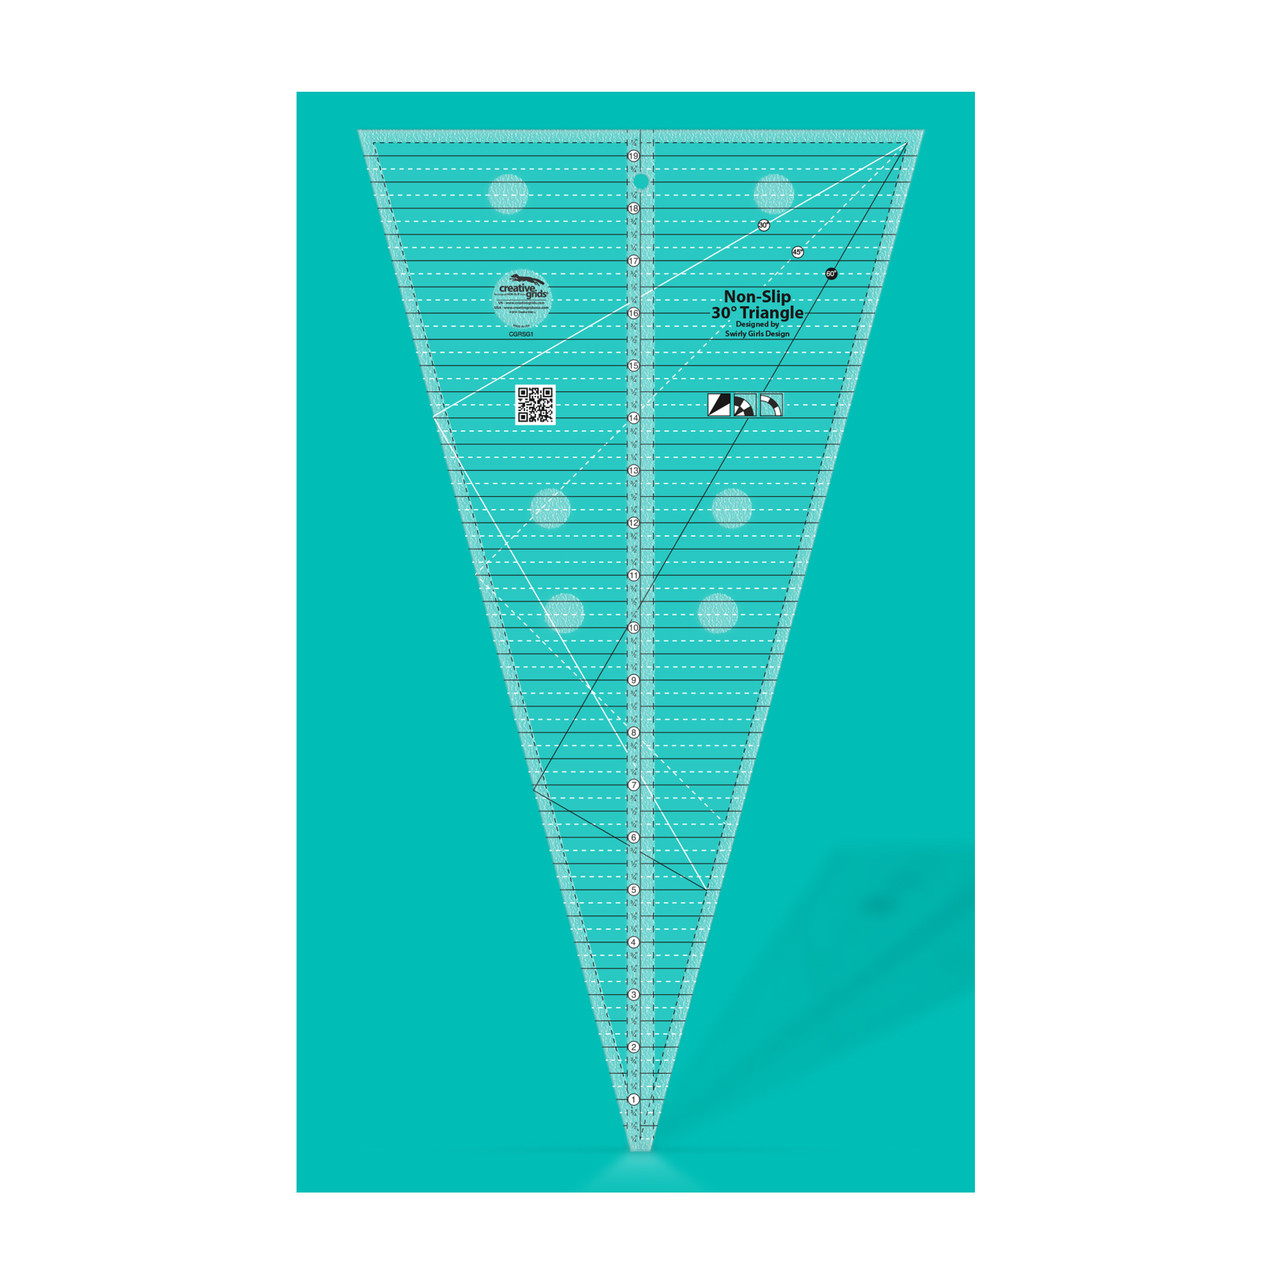 Sew Easy patchwork quilting Petal ruler template 45 degree